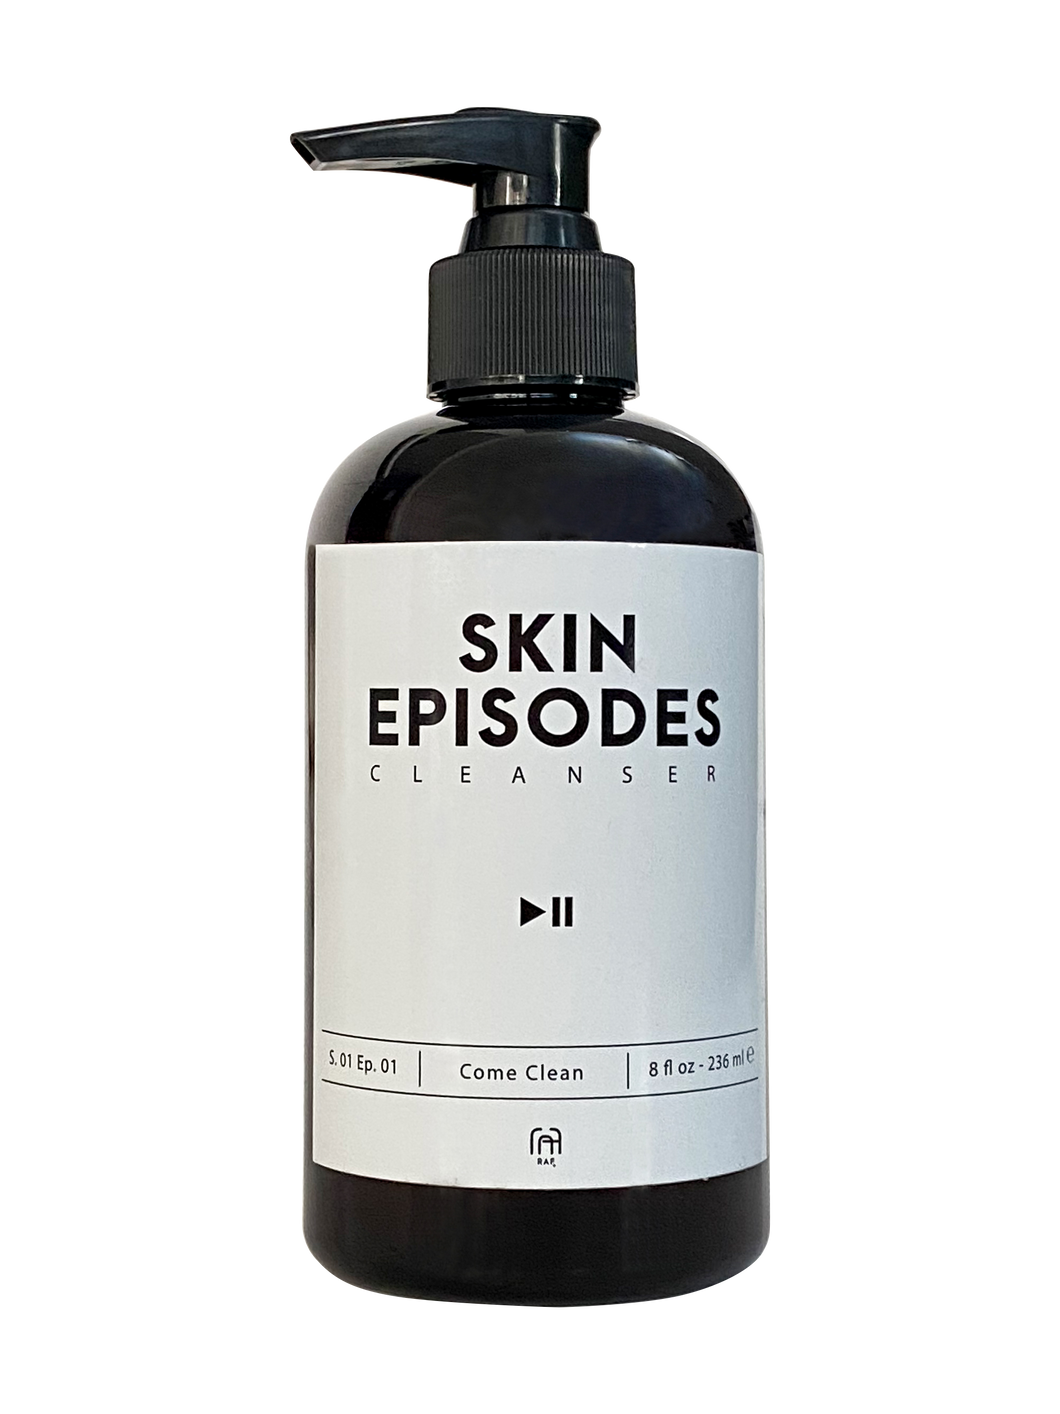 Skin episodes come clean cleanser by RAF® skincare 8fl.oz